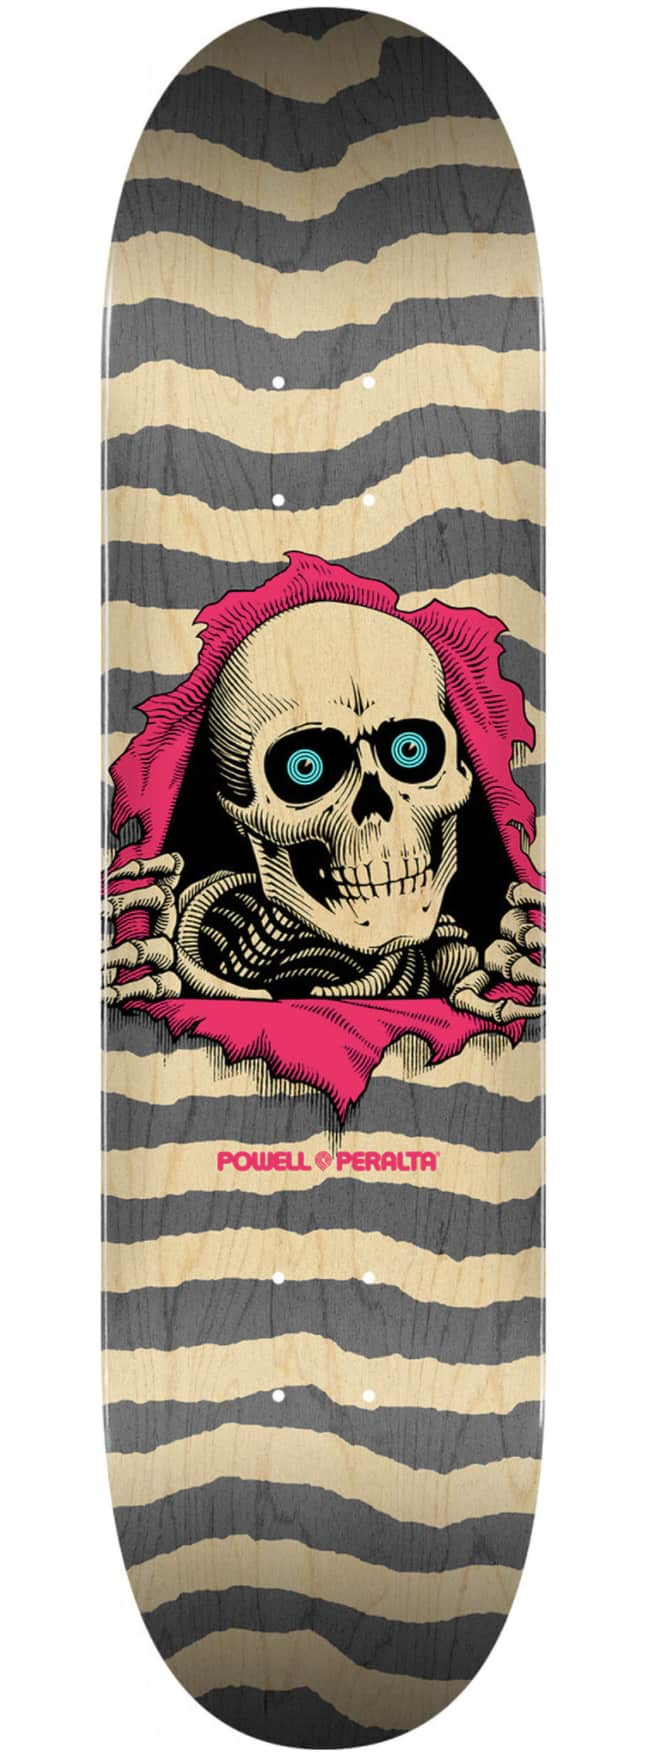 Powell Peralta Ripper Deck - Natural/Grey 8.25 | Deck by Powell Peralta 1